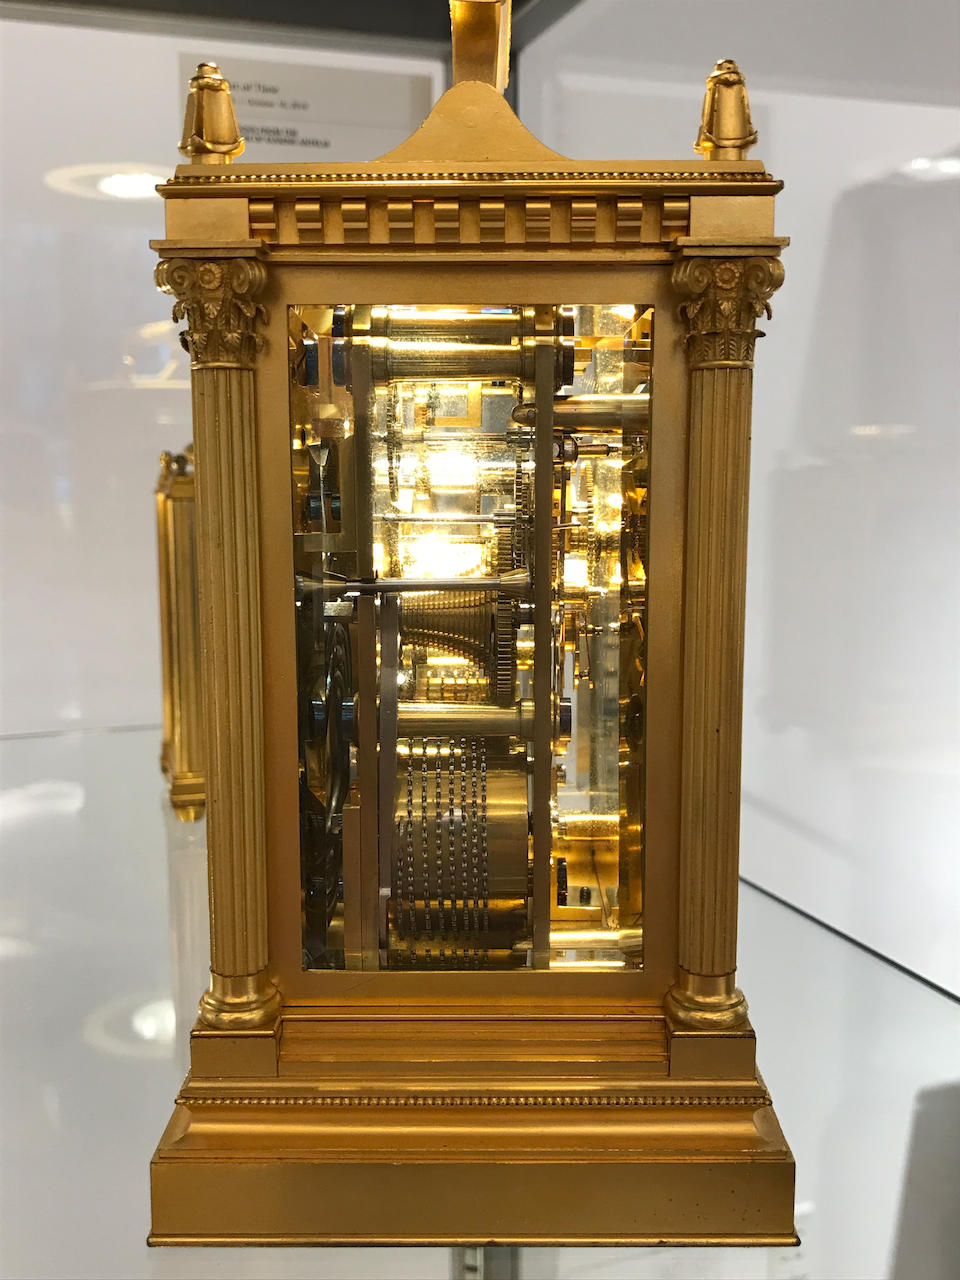 A very fine gilt hour striking and repeating carriage clock with seconds displaySigned B. Lawley, London, no. 1870 Mid 19th century